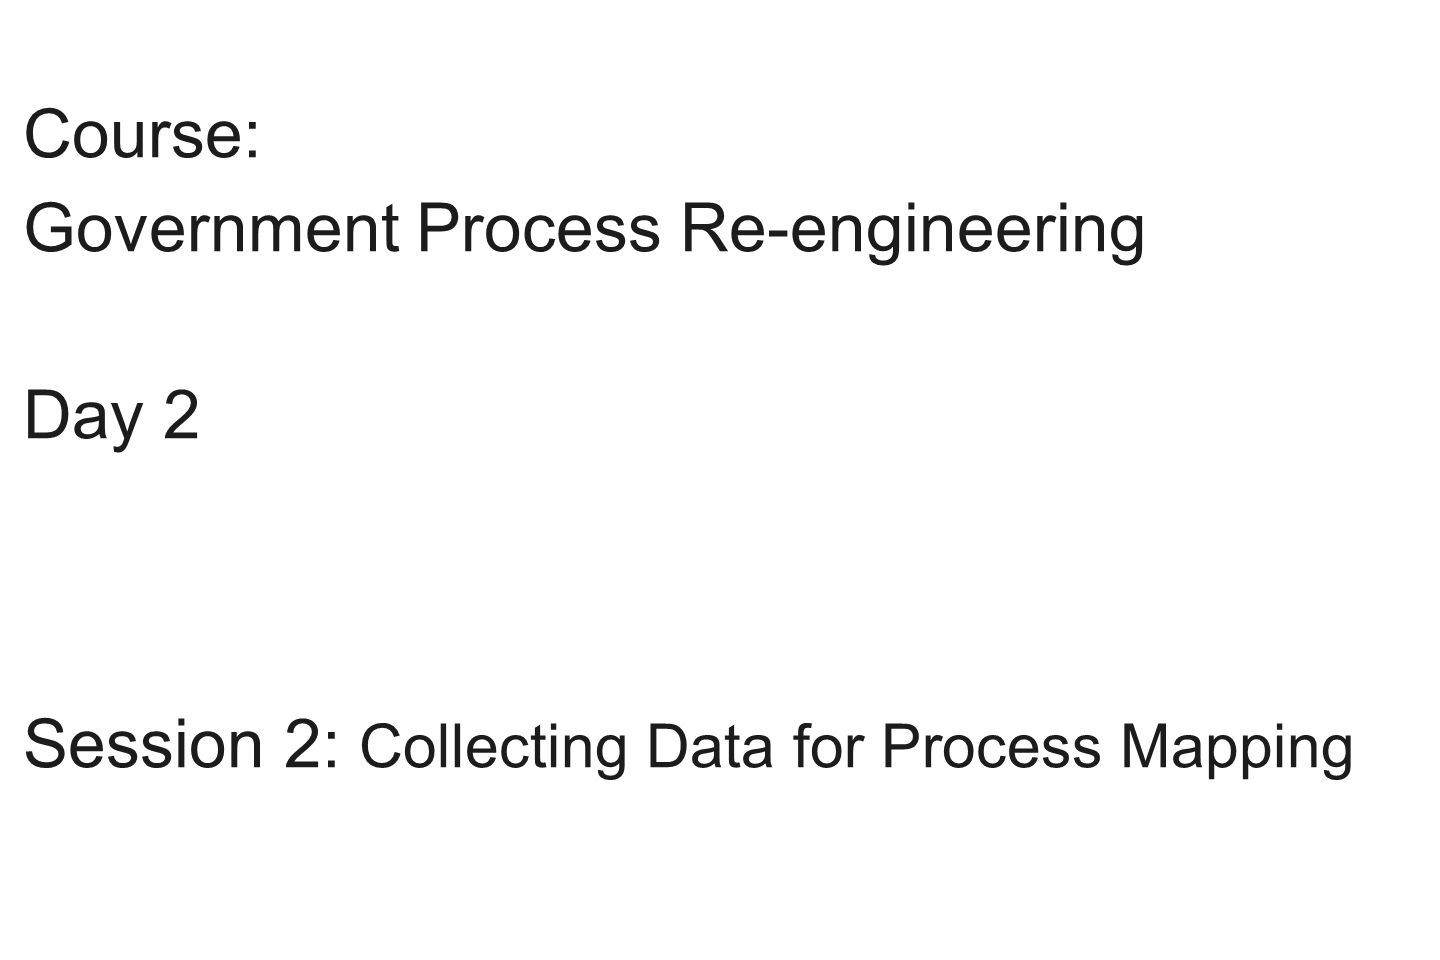 Course: Government Process Re-engineering Day 2 Session 2: Collecting Data for Process Mapping